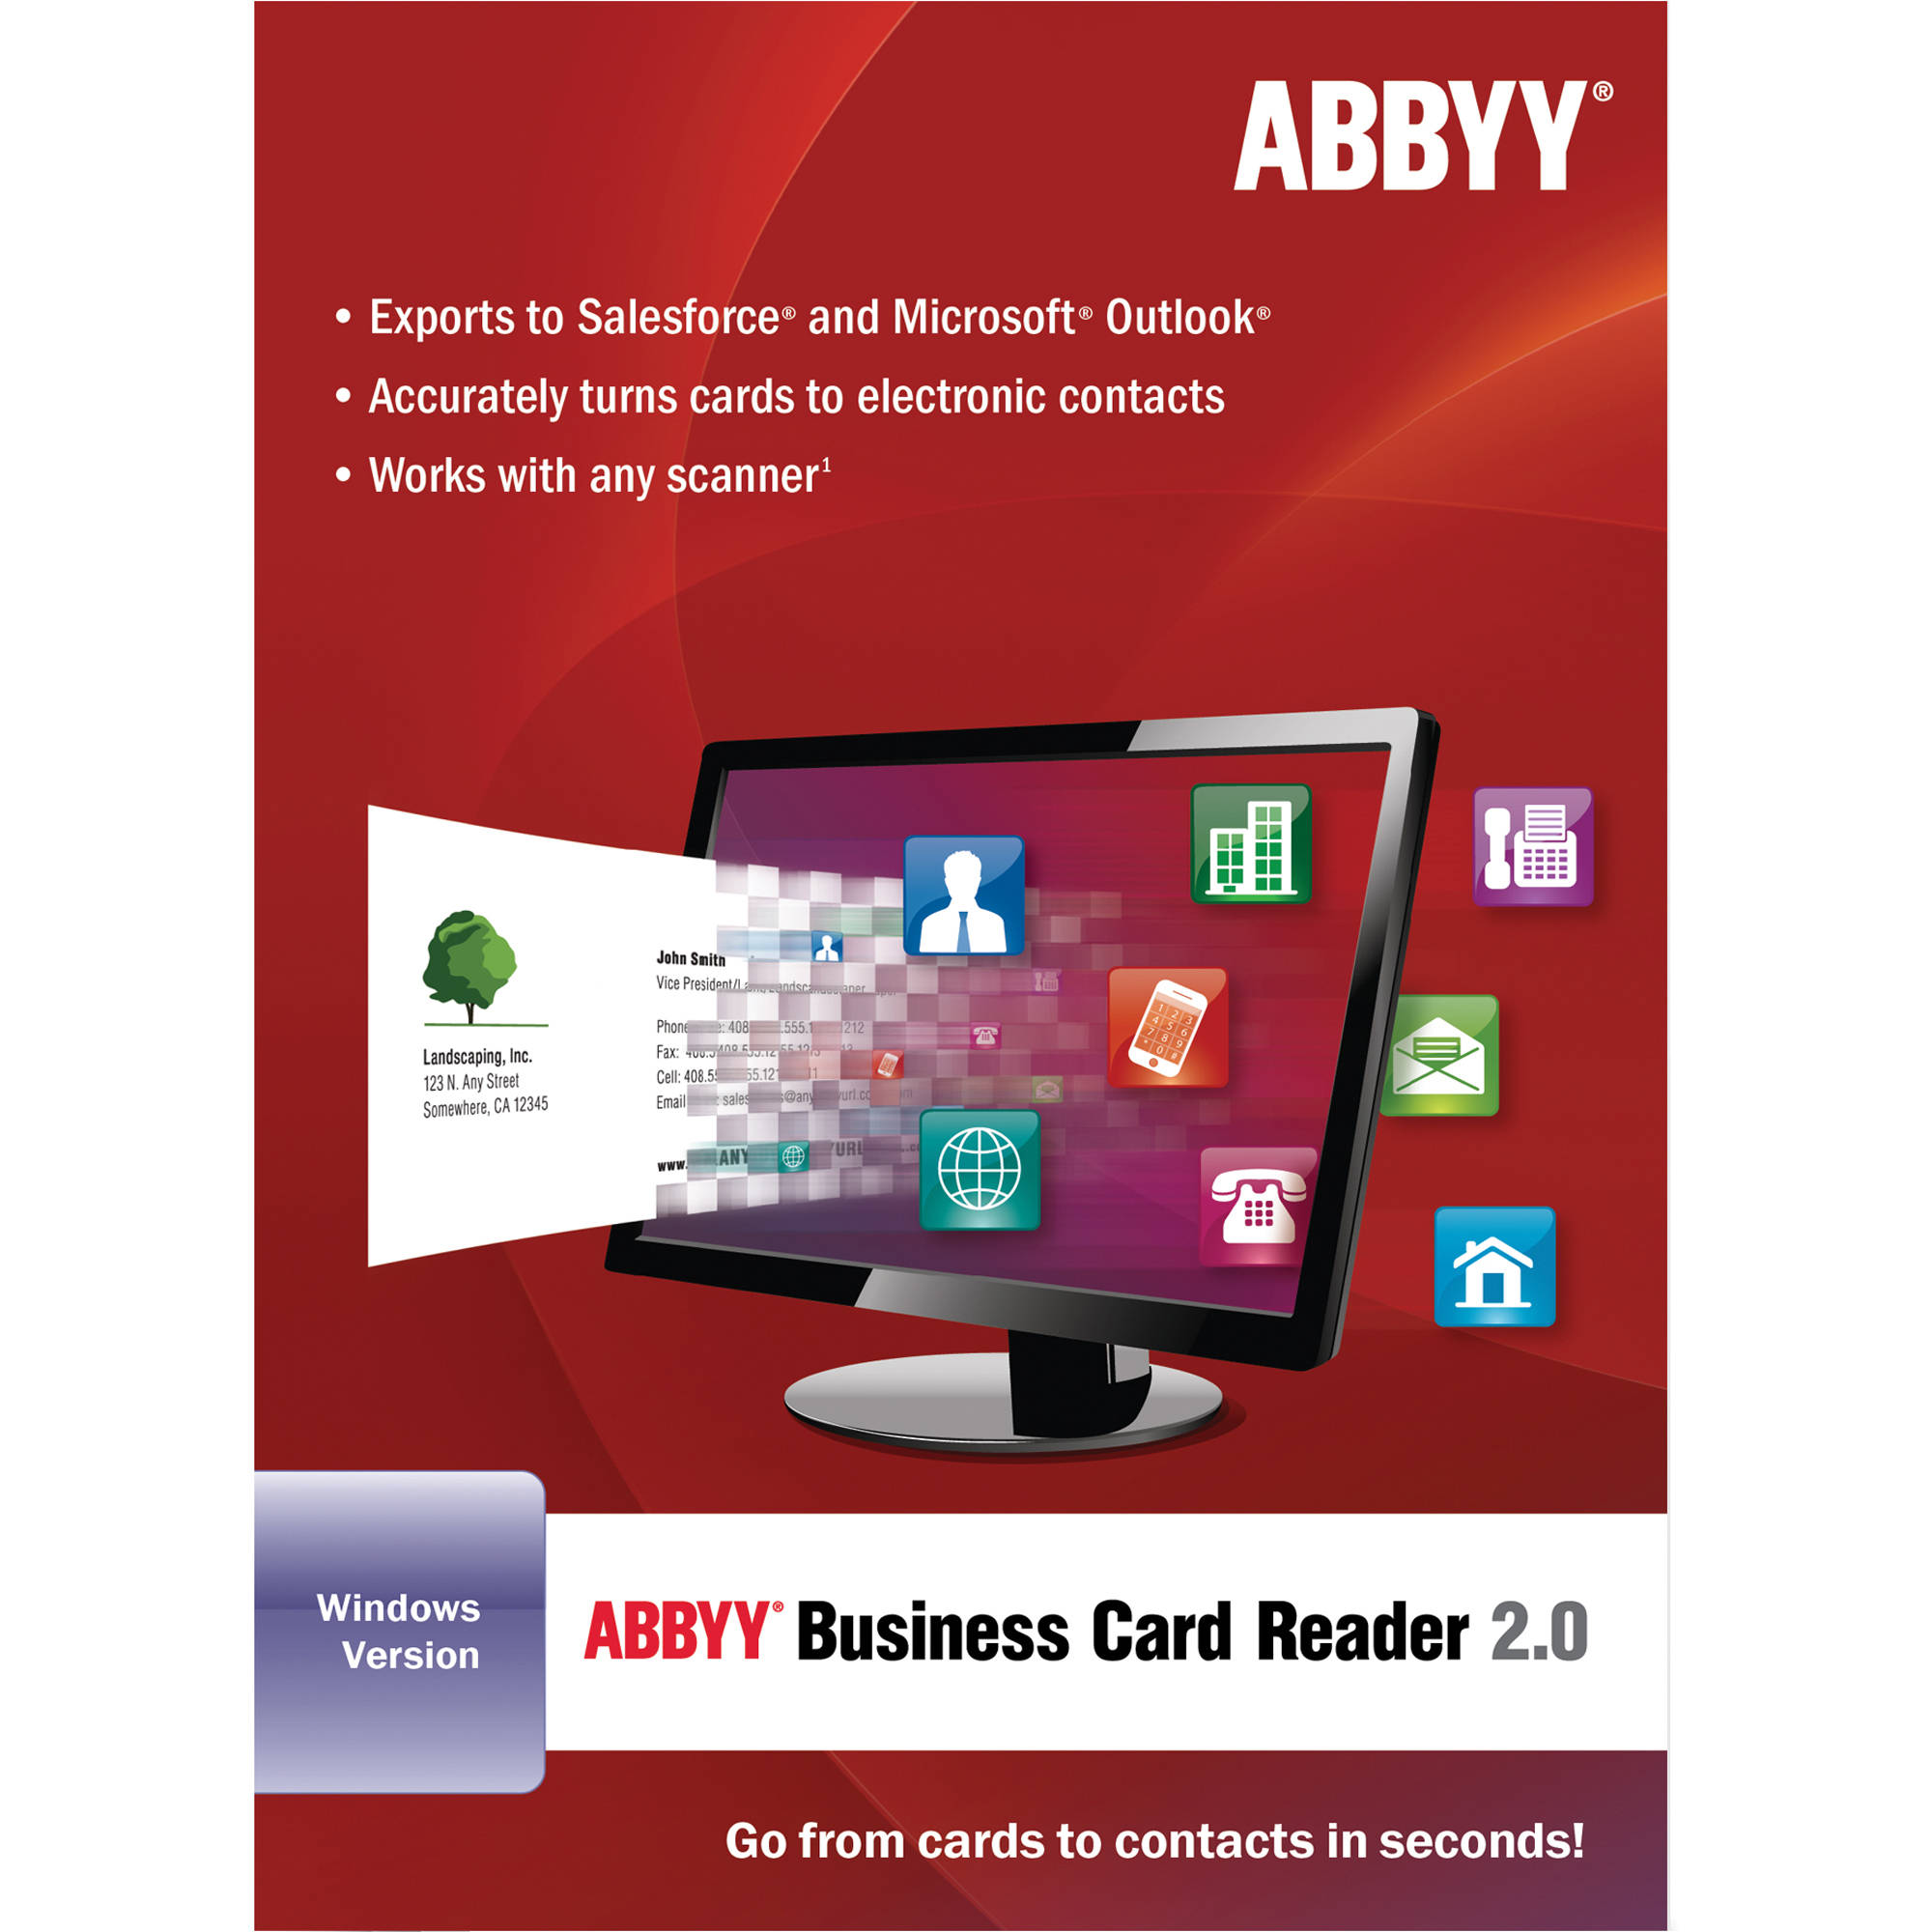 Abbyy abbyy business card reader 20 for windows frlbcrdfw2xb abbyy abbyy business card reader 20 for windows reheart Image collections